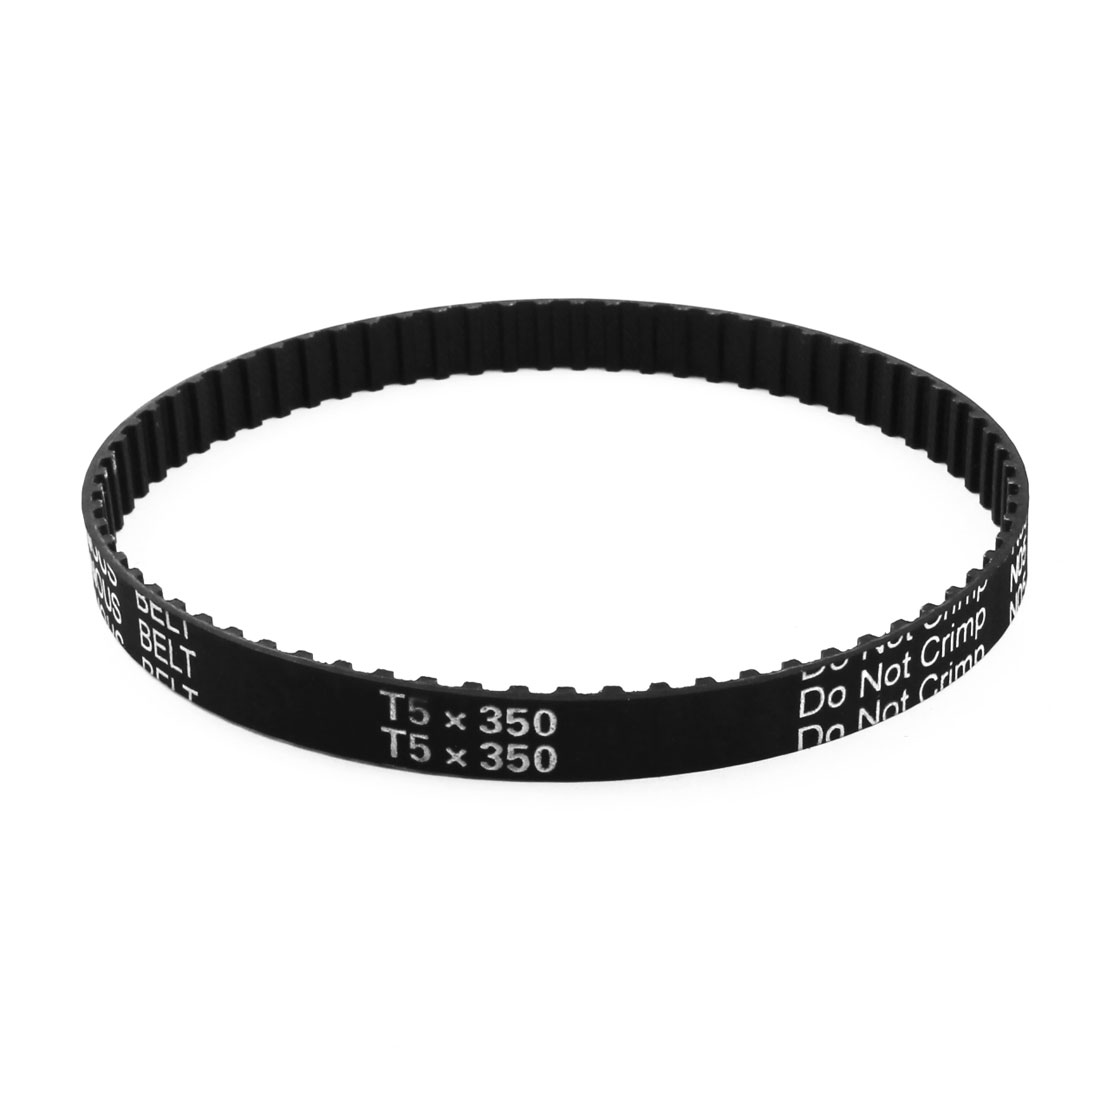 T5x350 70-Tooth 5mm Pitch 10mm Wide Black Industrial Groove Stepper Motor Synchronous Timing Belt 13.8""